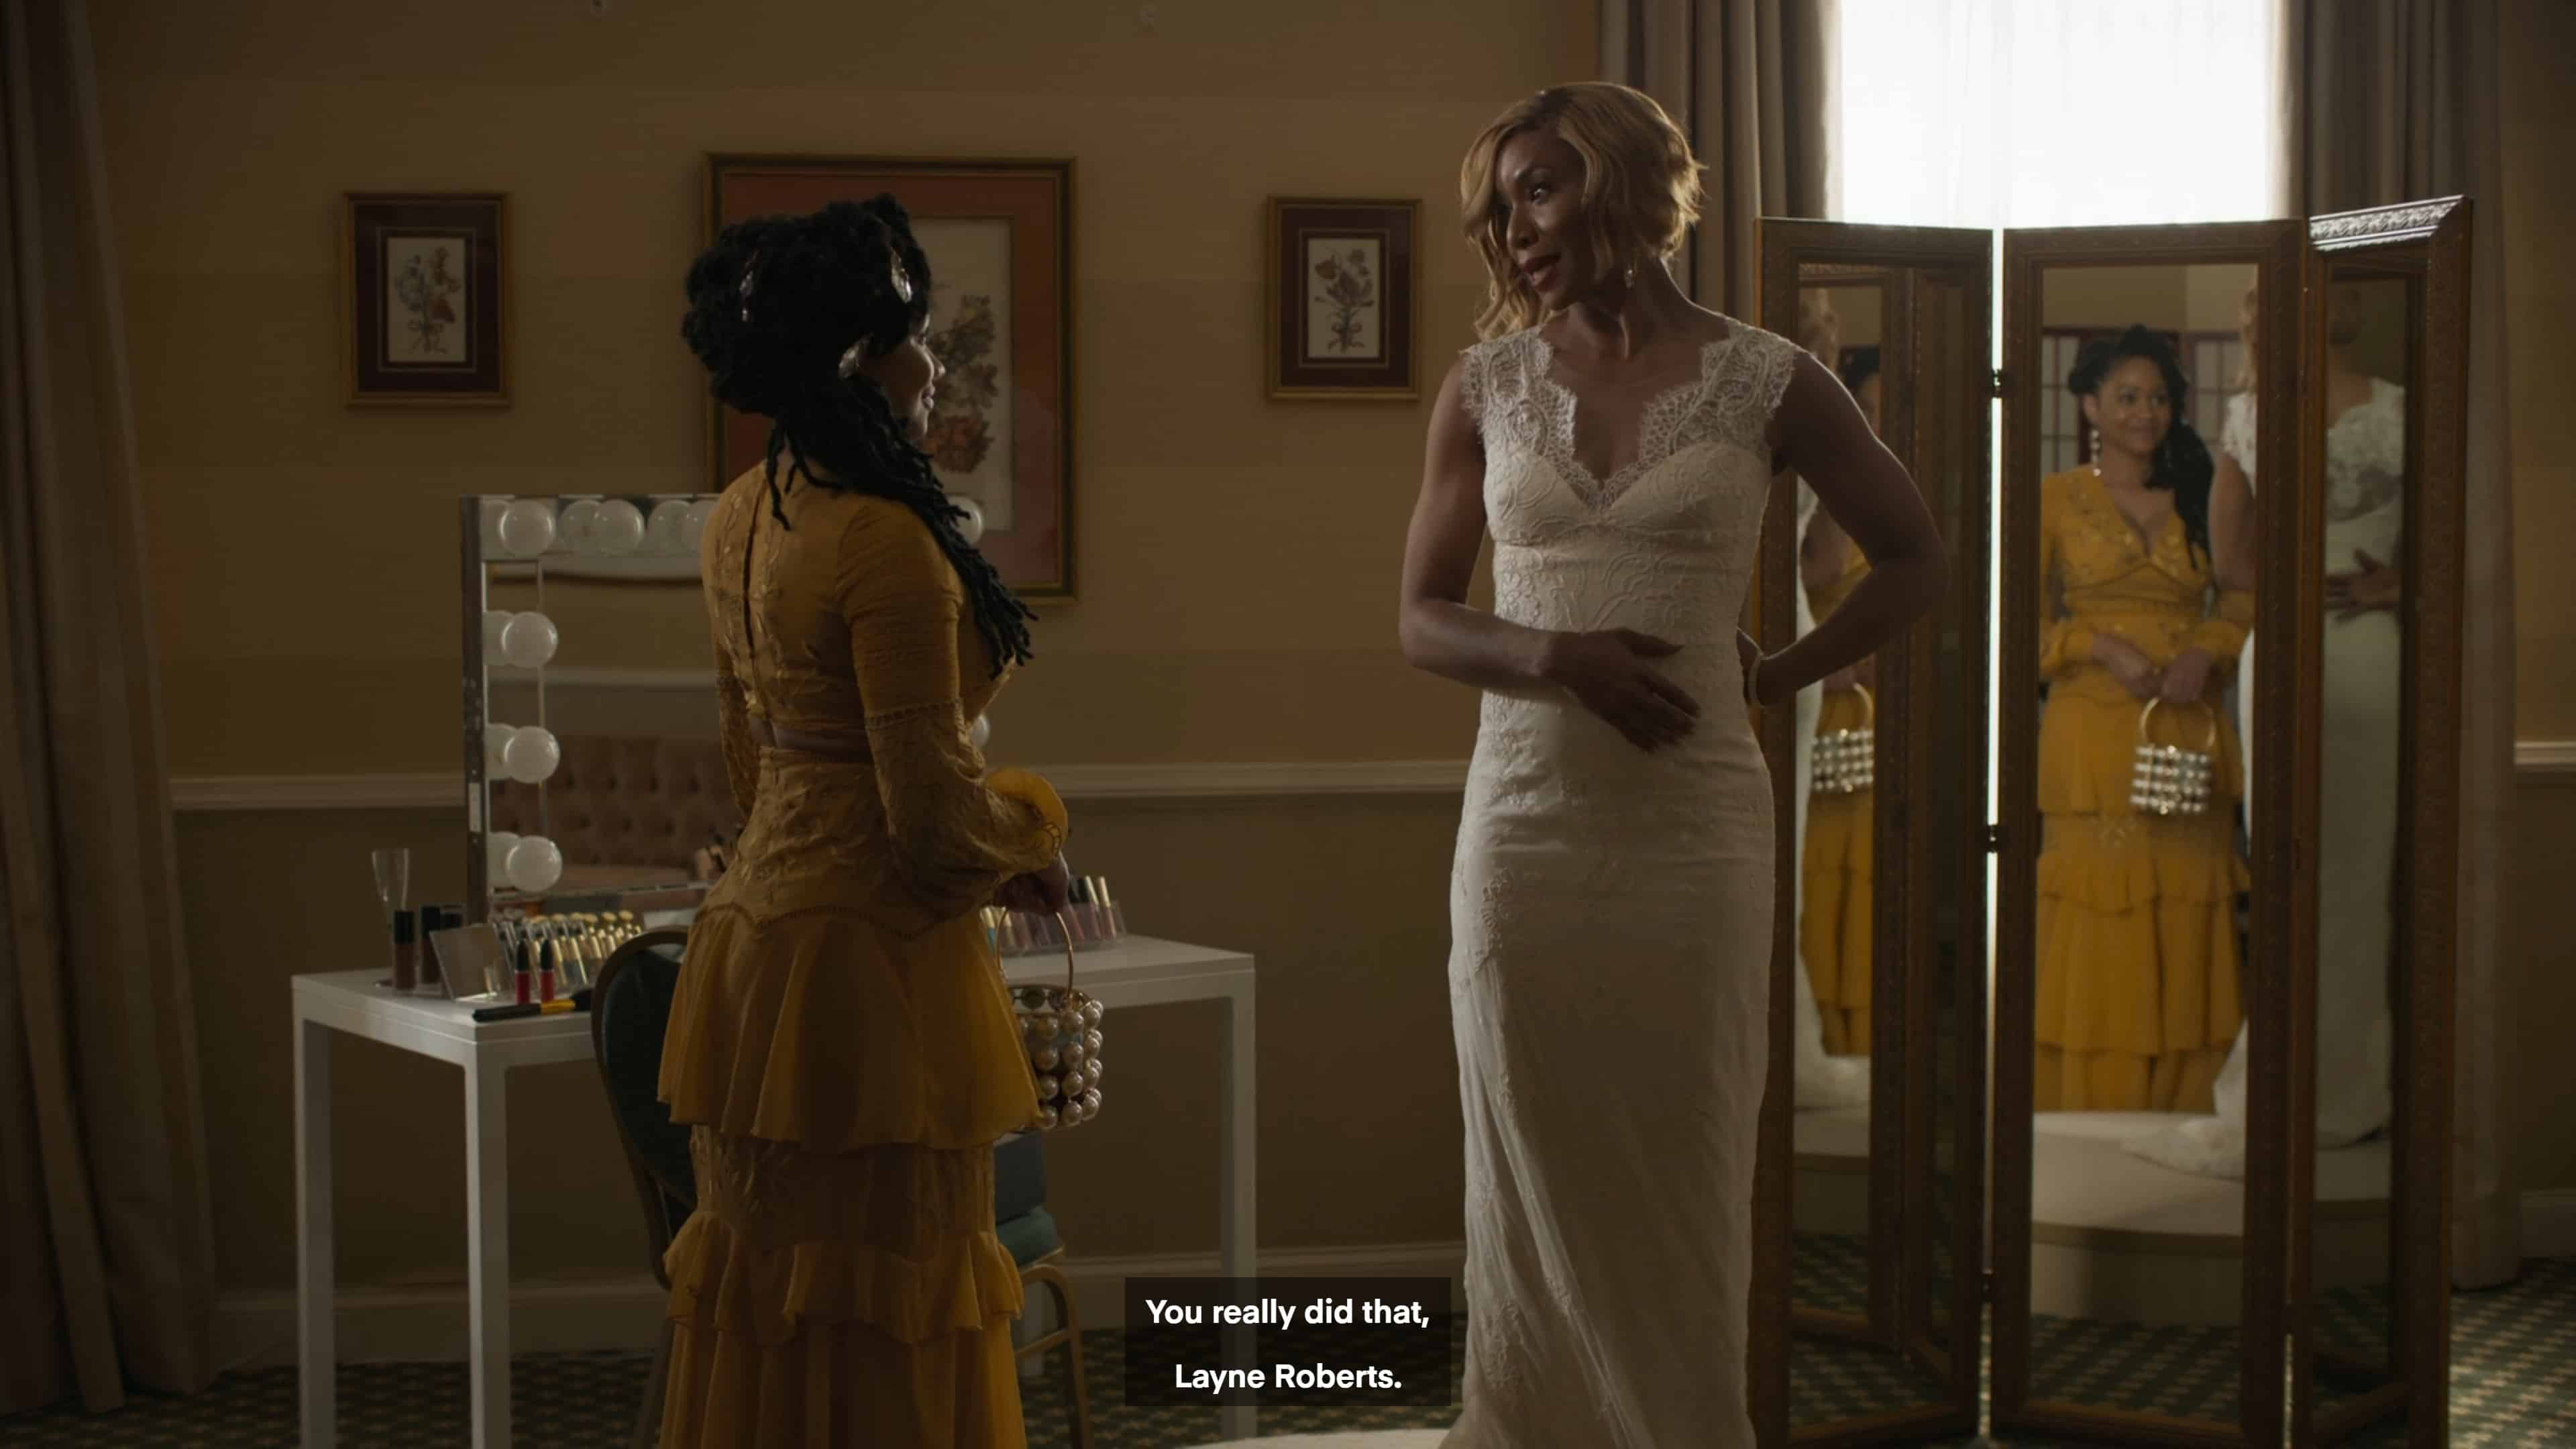 Connie thanking Layne for fixing her dress